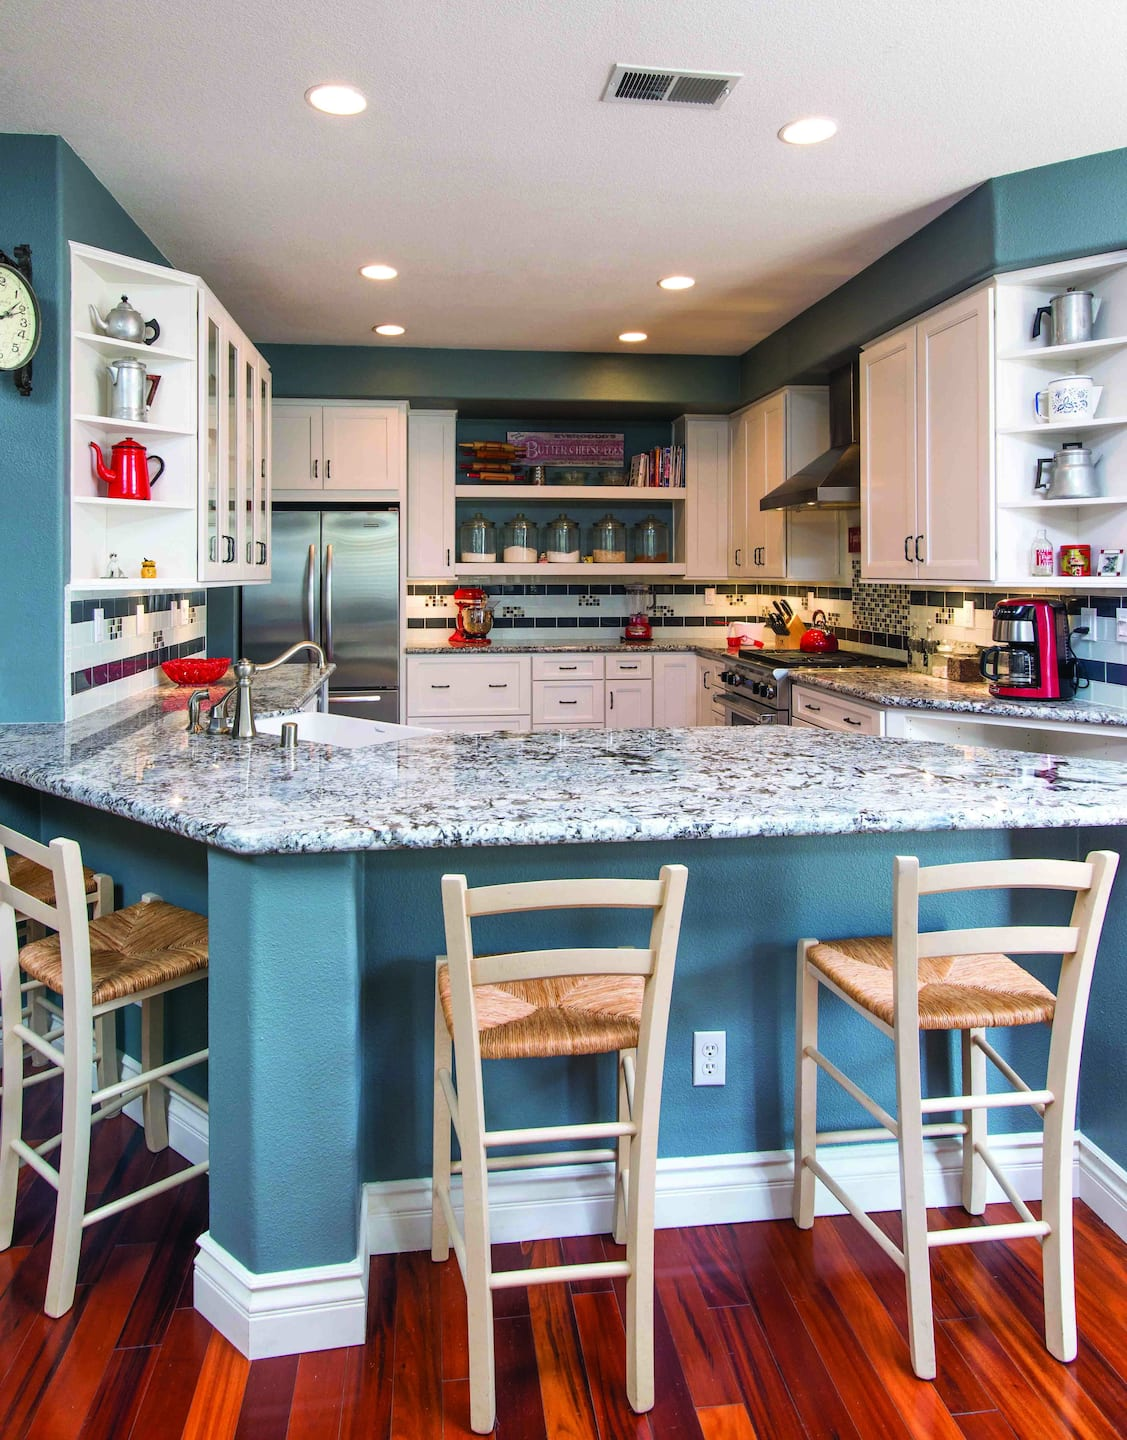 Kitchen With Granite Countertops, Tile Backsplash And Open Faced Cabinets